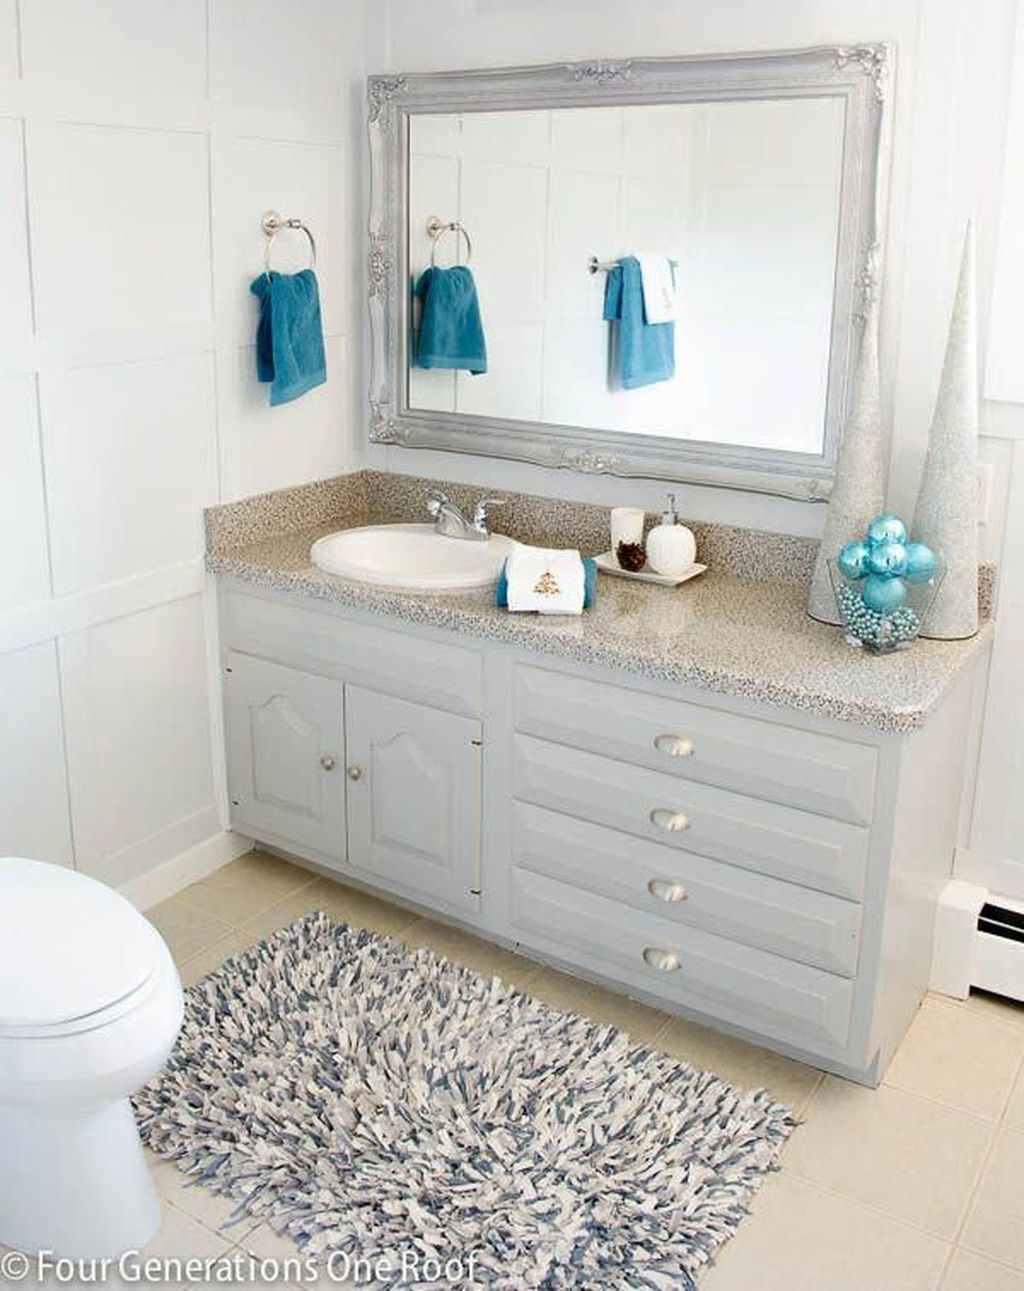 The Best Winter Bathroom Decor Ideas 32